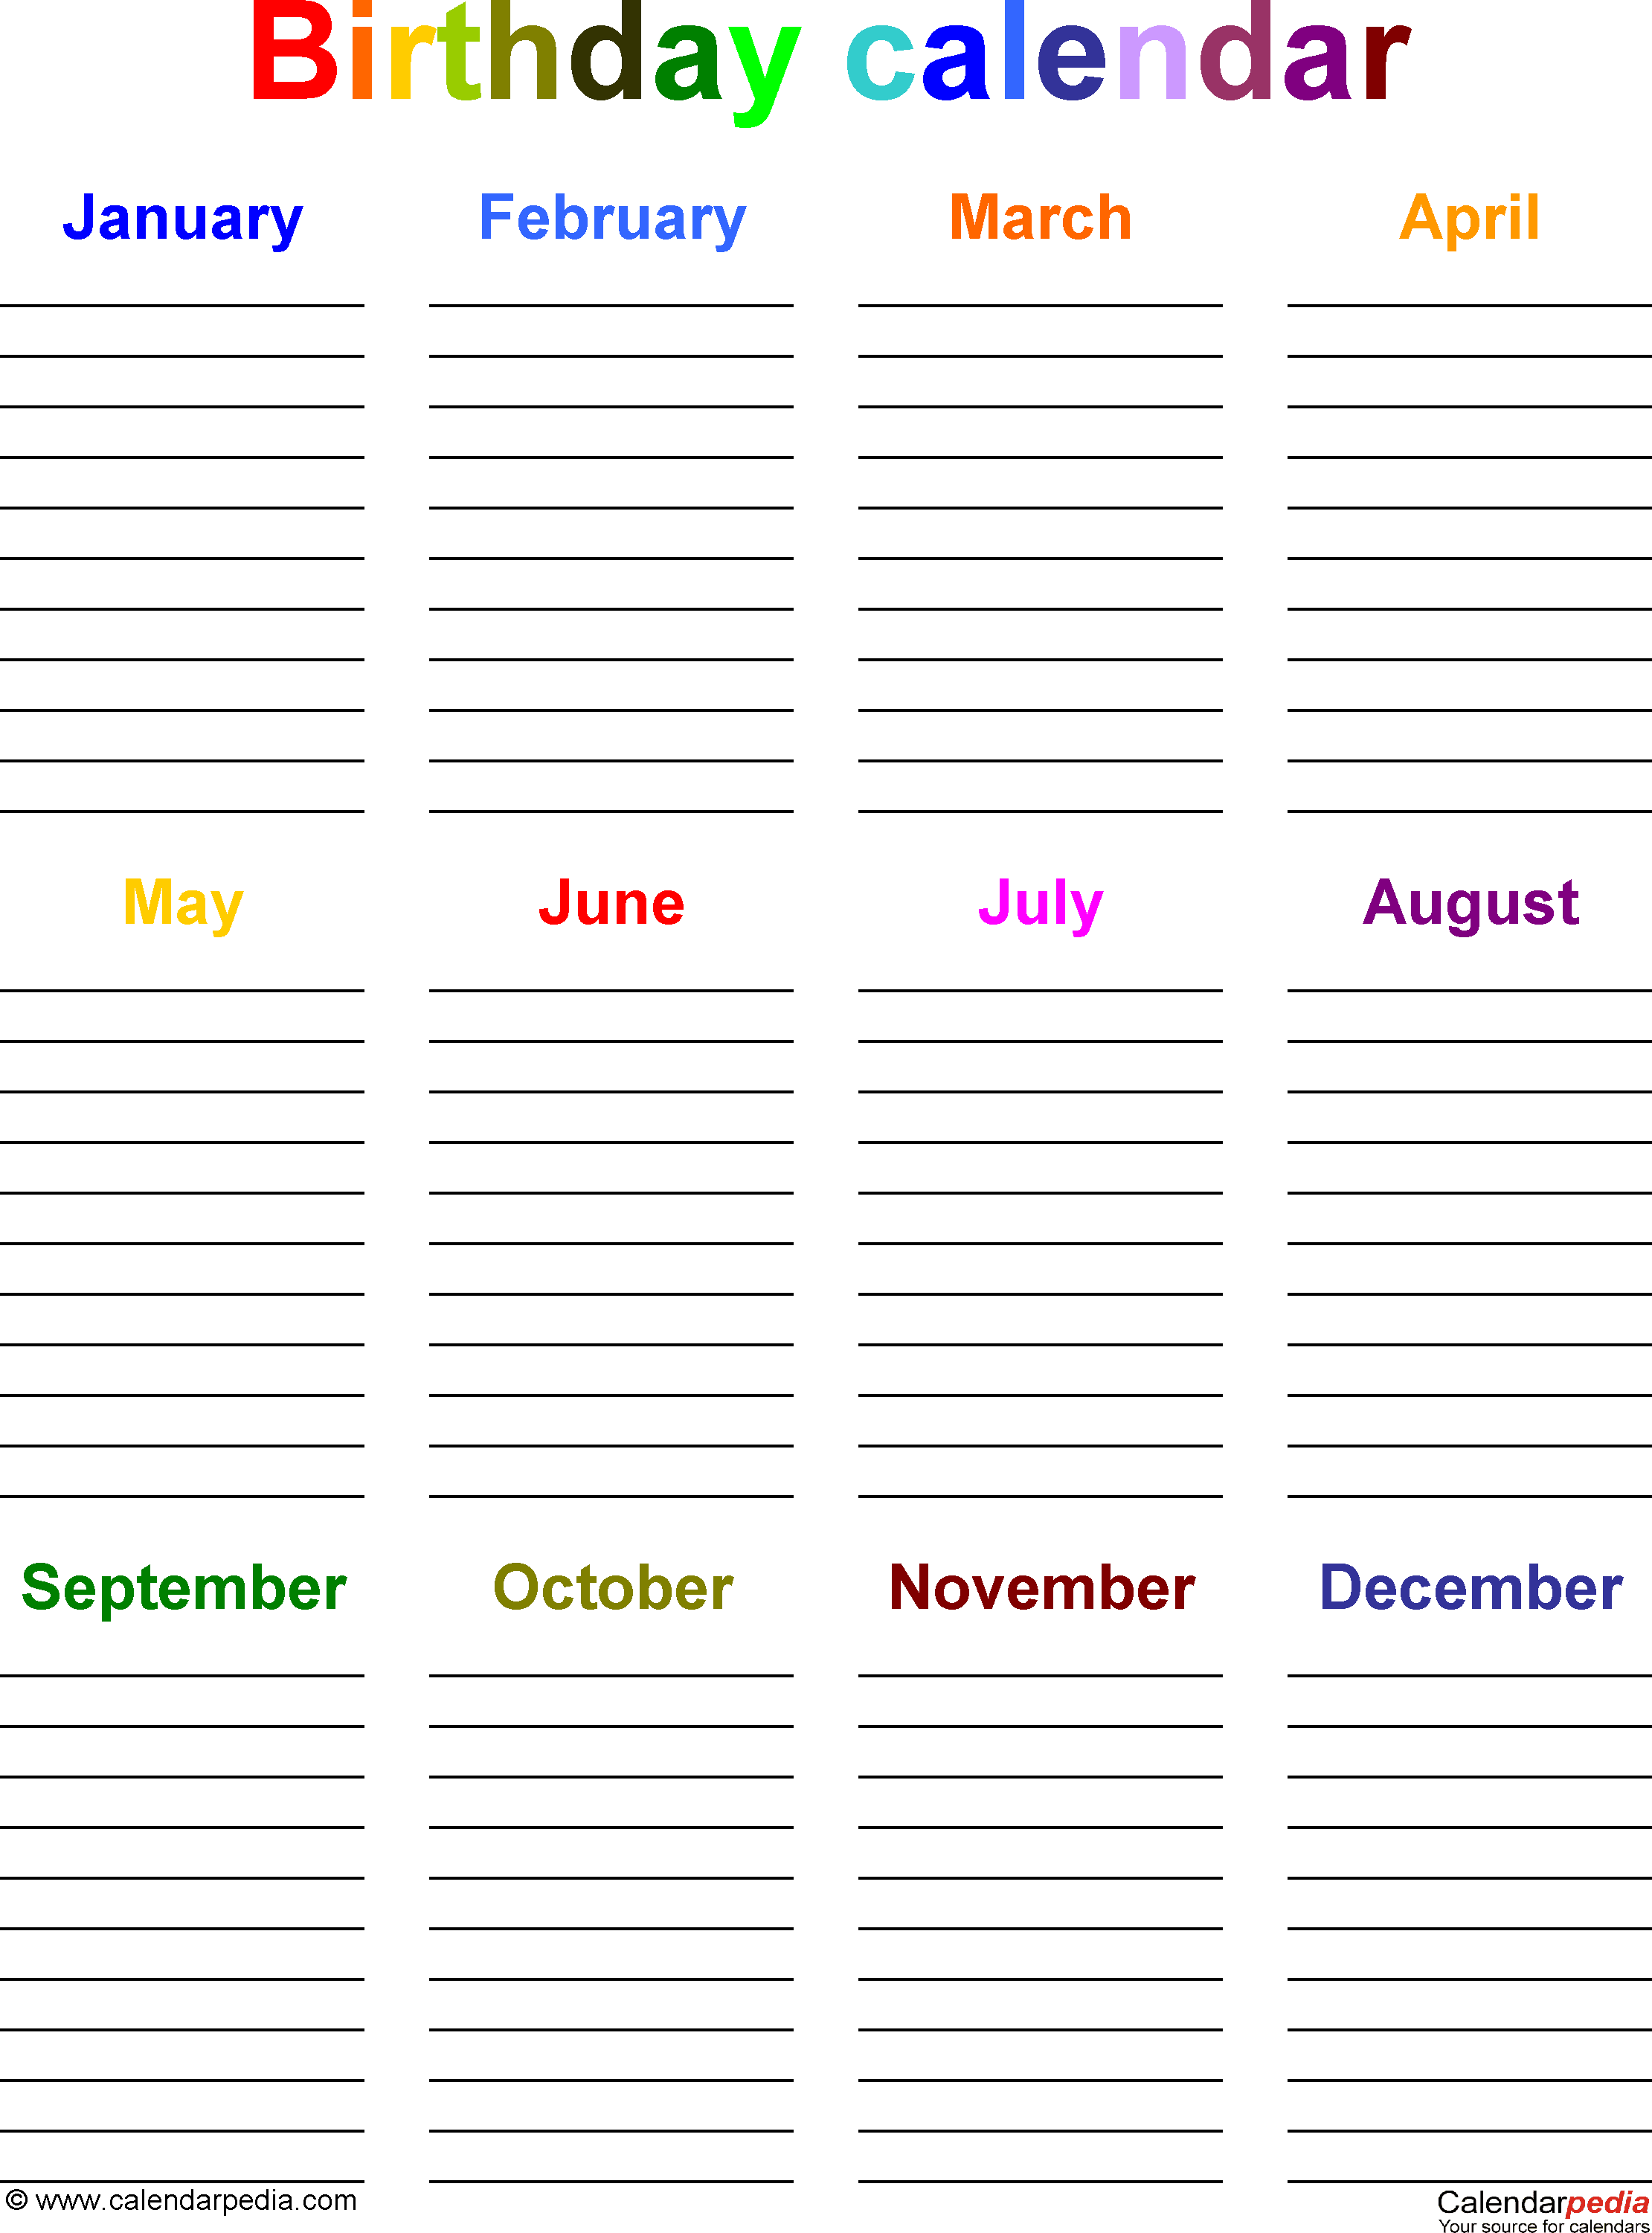 Template 5 Template For Birthday Calendar In Color